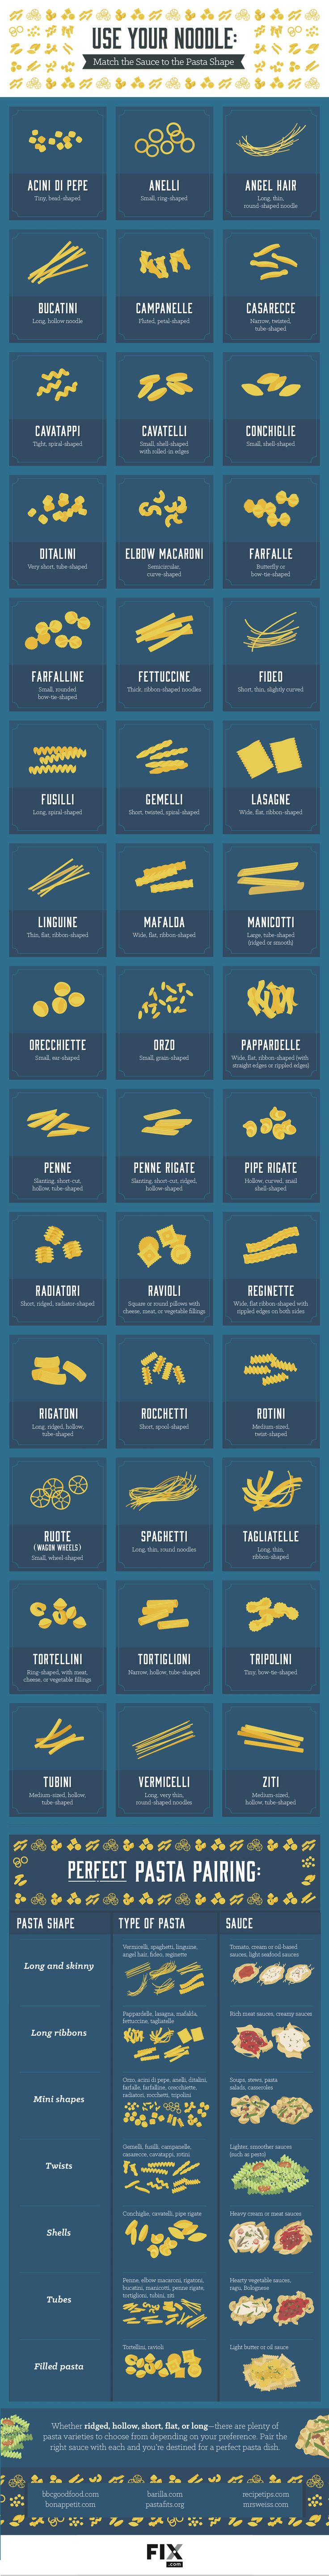 The Best Kind Of Pasta Shape For Every Type Of Sauce. It Matters.